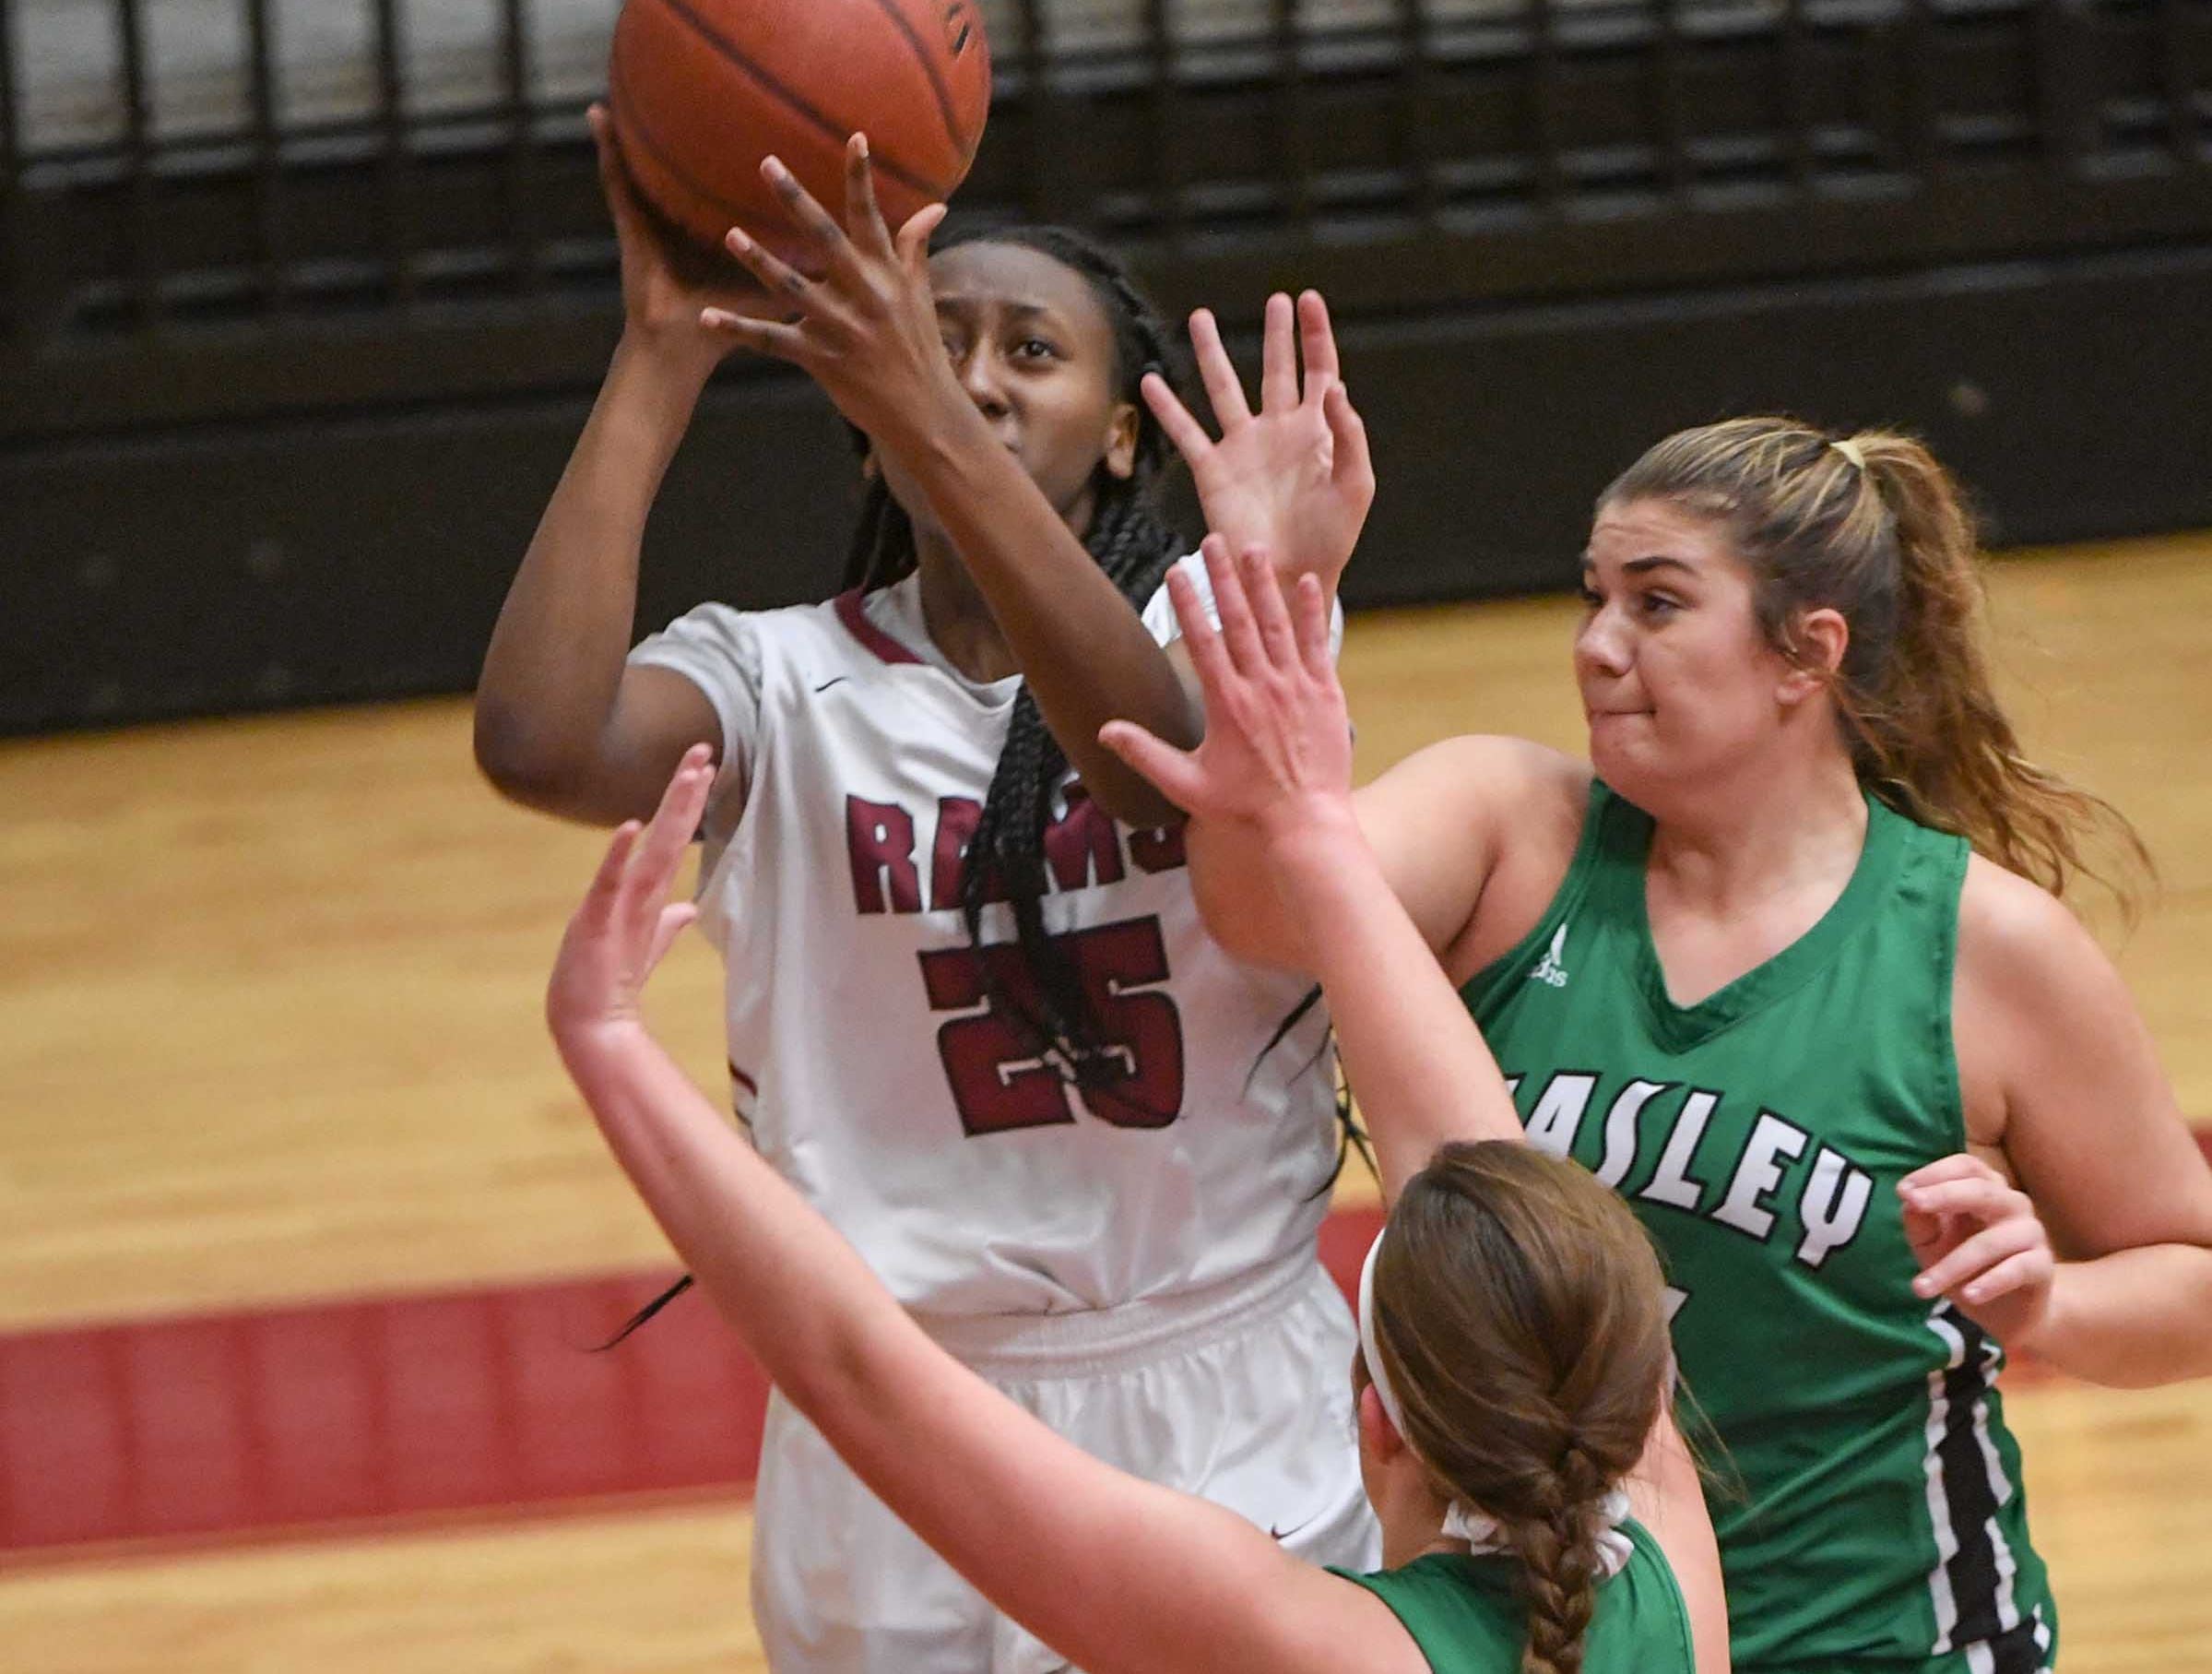 Westside junior Keyshuna Fair(25) shoots near Easley freshman Kylie Nabors(15) during the fourth quarter at Westside High School in Anderson on Friday.